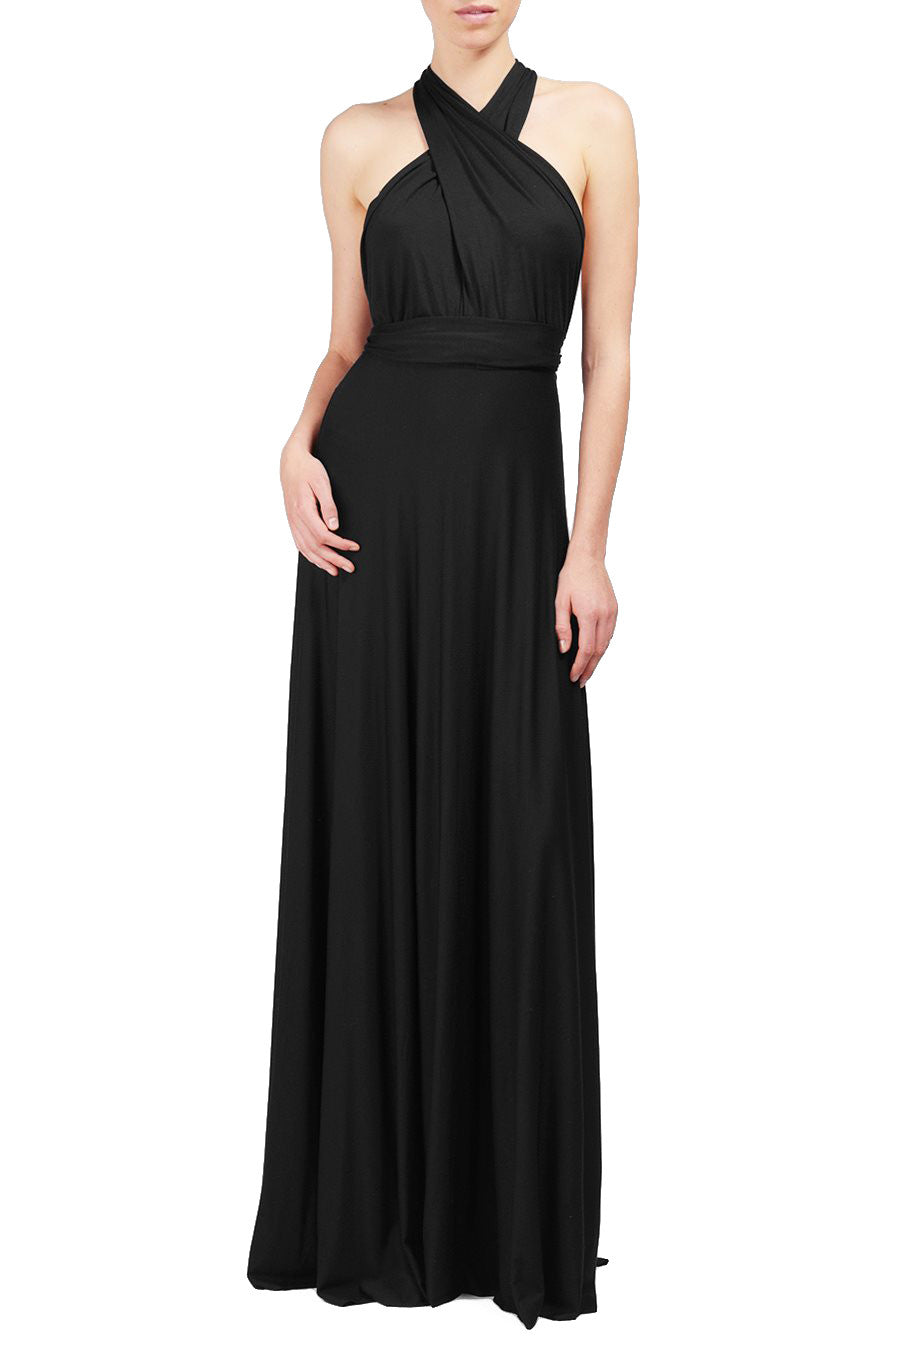 Alady Dress - Black